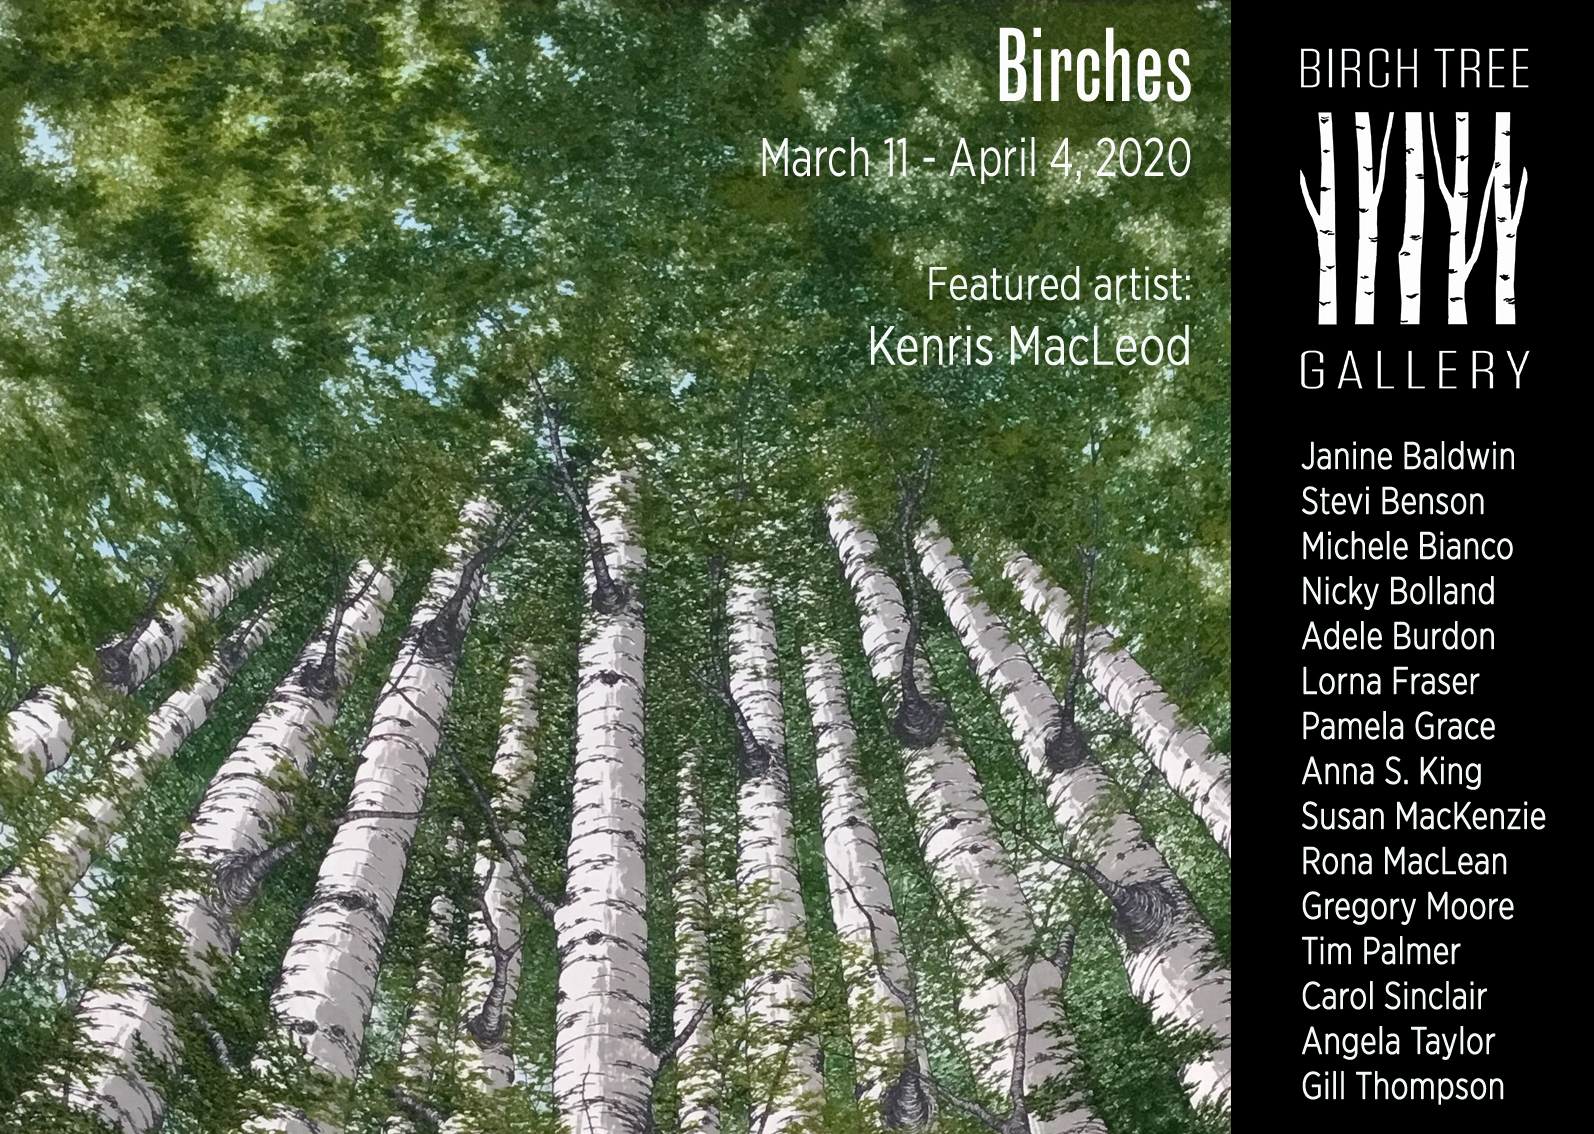 Birch Tree Gallery - ad Birches (anniversary)